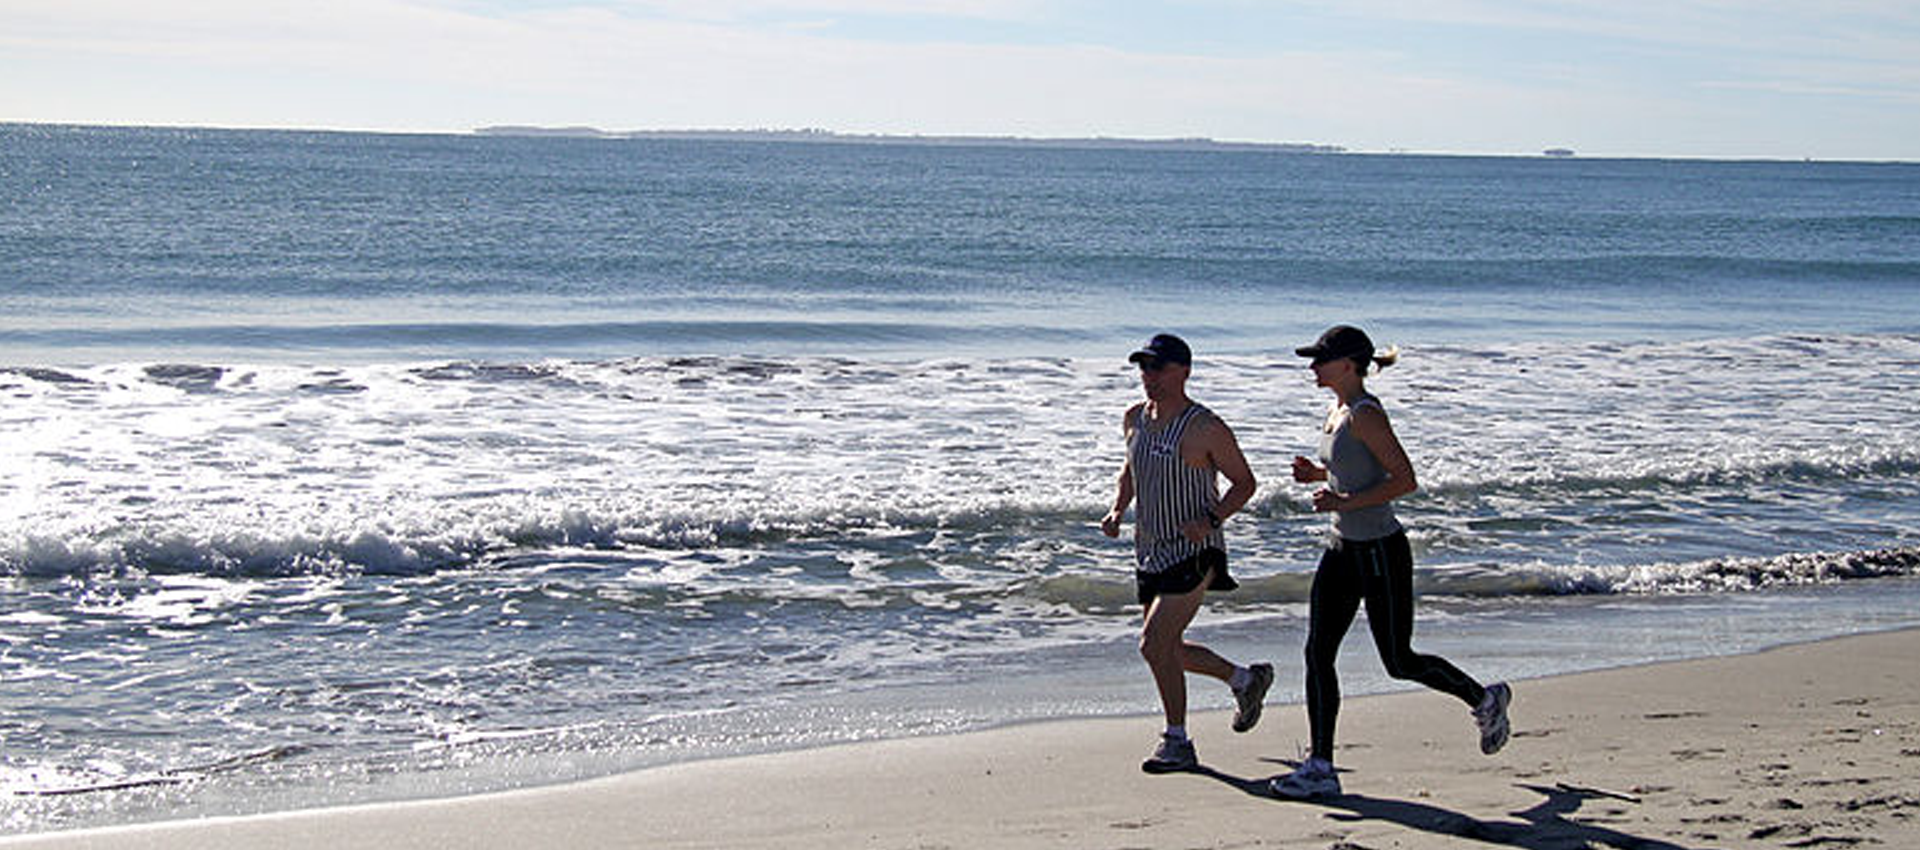 Running along beach